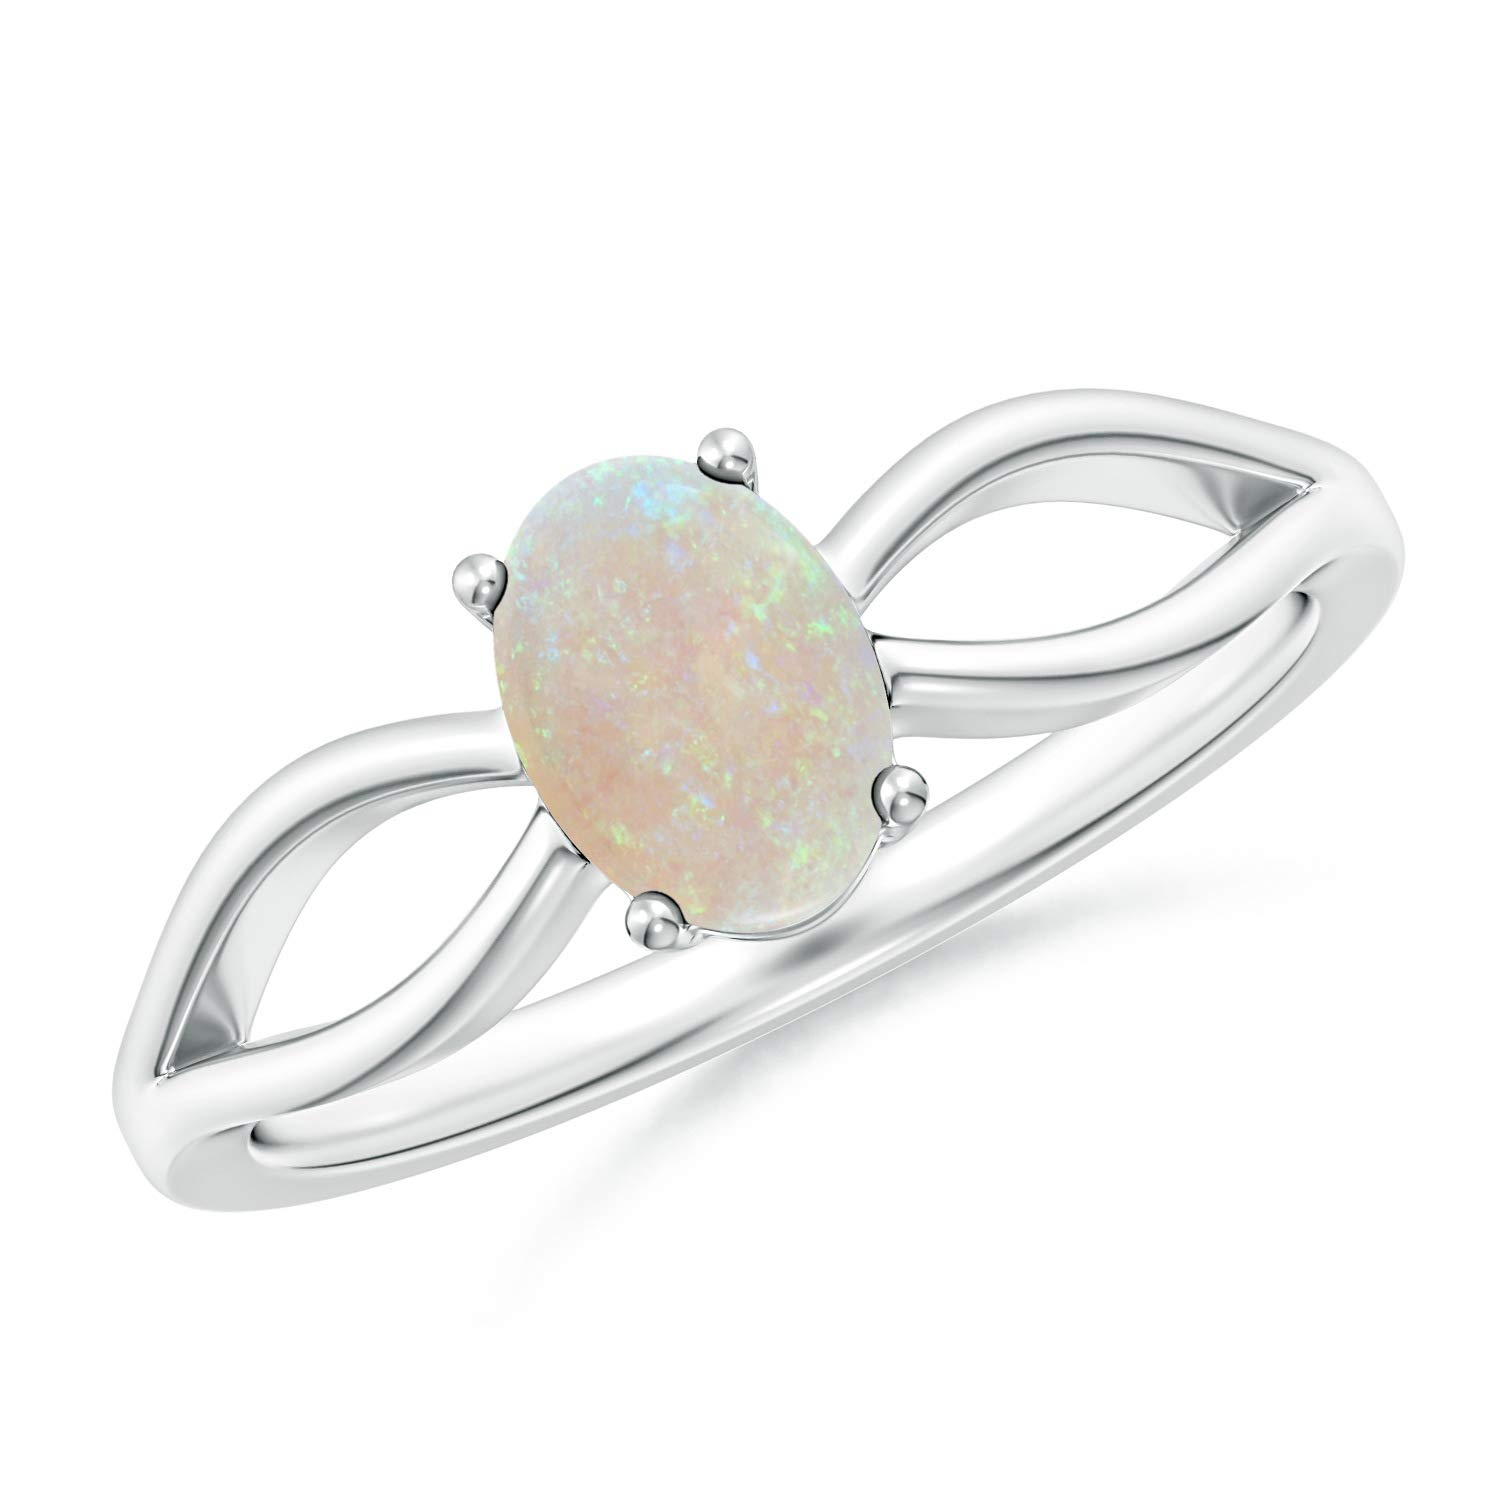 Prong-Set Solitaire Natural Opal Split Shank Ring 7x5mm Opal